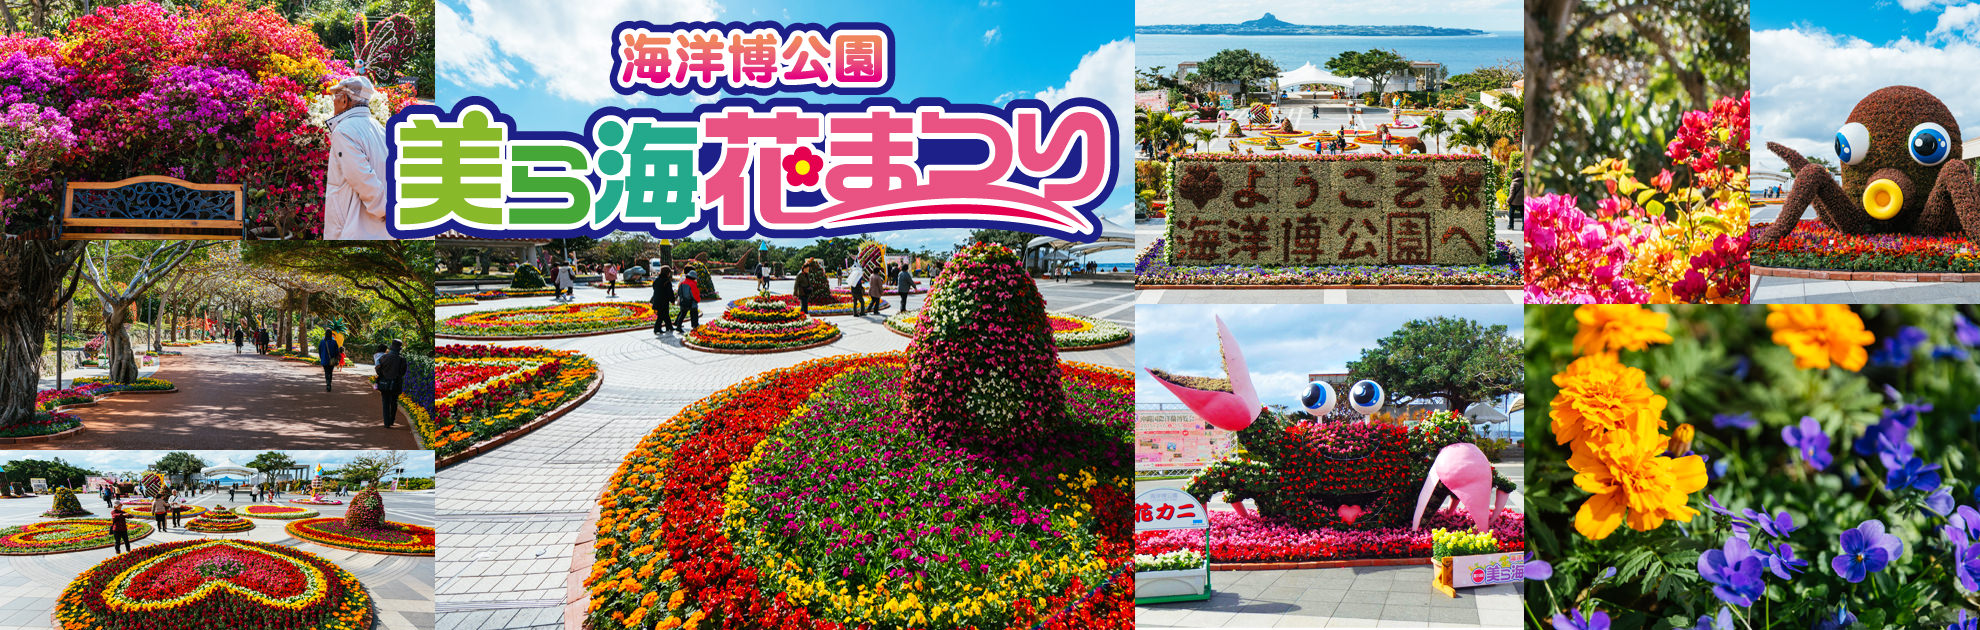 Ocean Expo Park twelfth beauty and others Sea flower Festival! Flowers spreading through one side meet all of you!